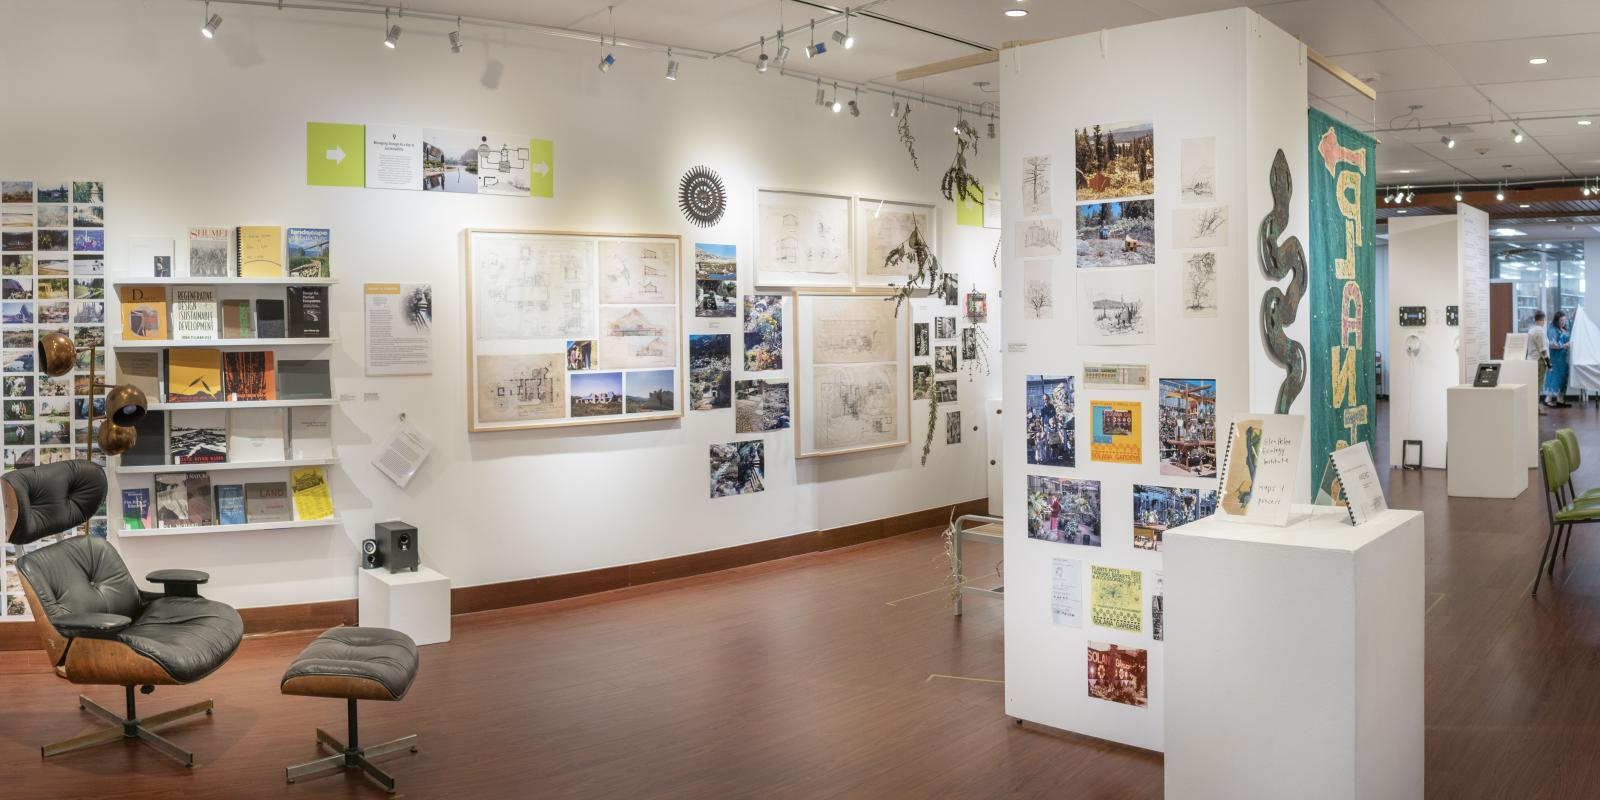 """Installation View, Back of gallery, """"John T. Lyle and the Future of Regenerative Design"""" Exhibition, Oct.17, 2019 to Dec.8, 2019, Curator: Cybele Lyle, Don B. Huntley Gallery, Cal Poly Pomona."""